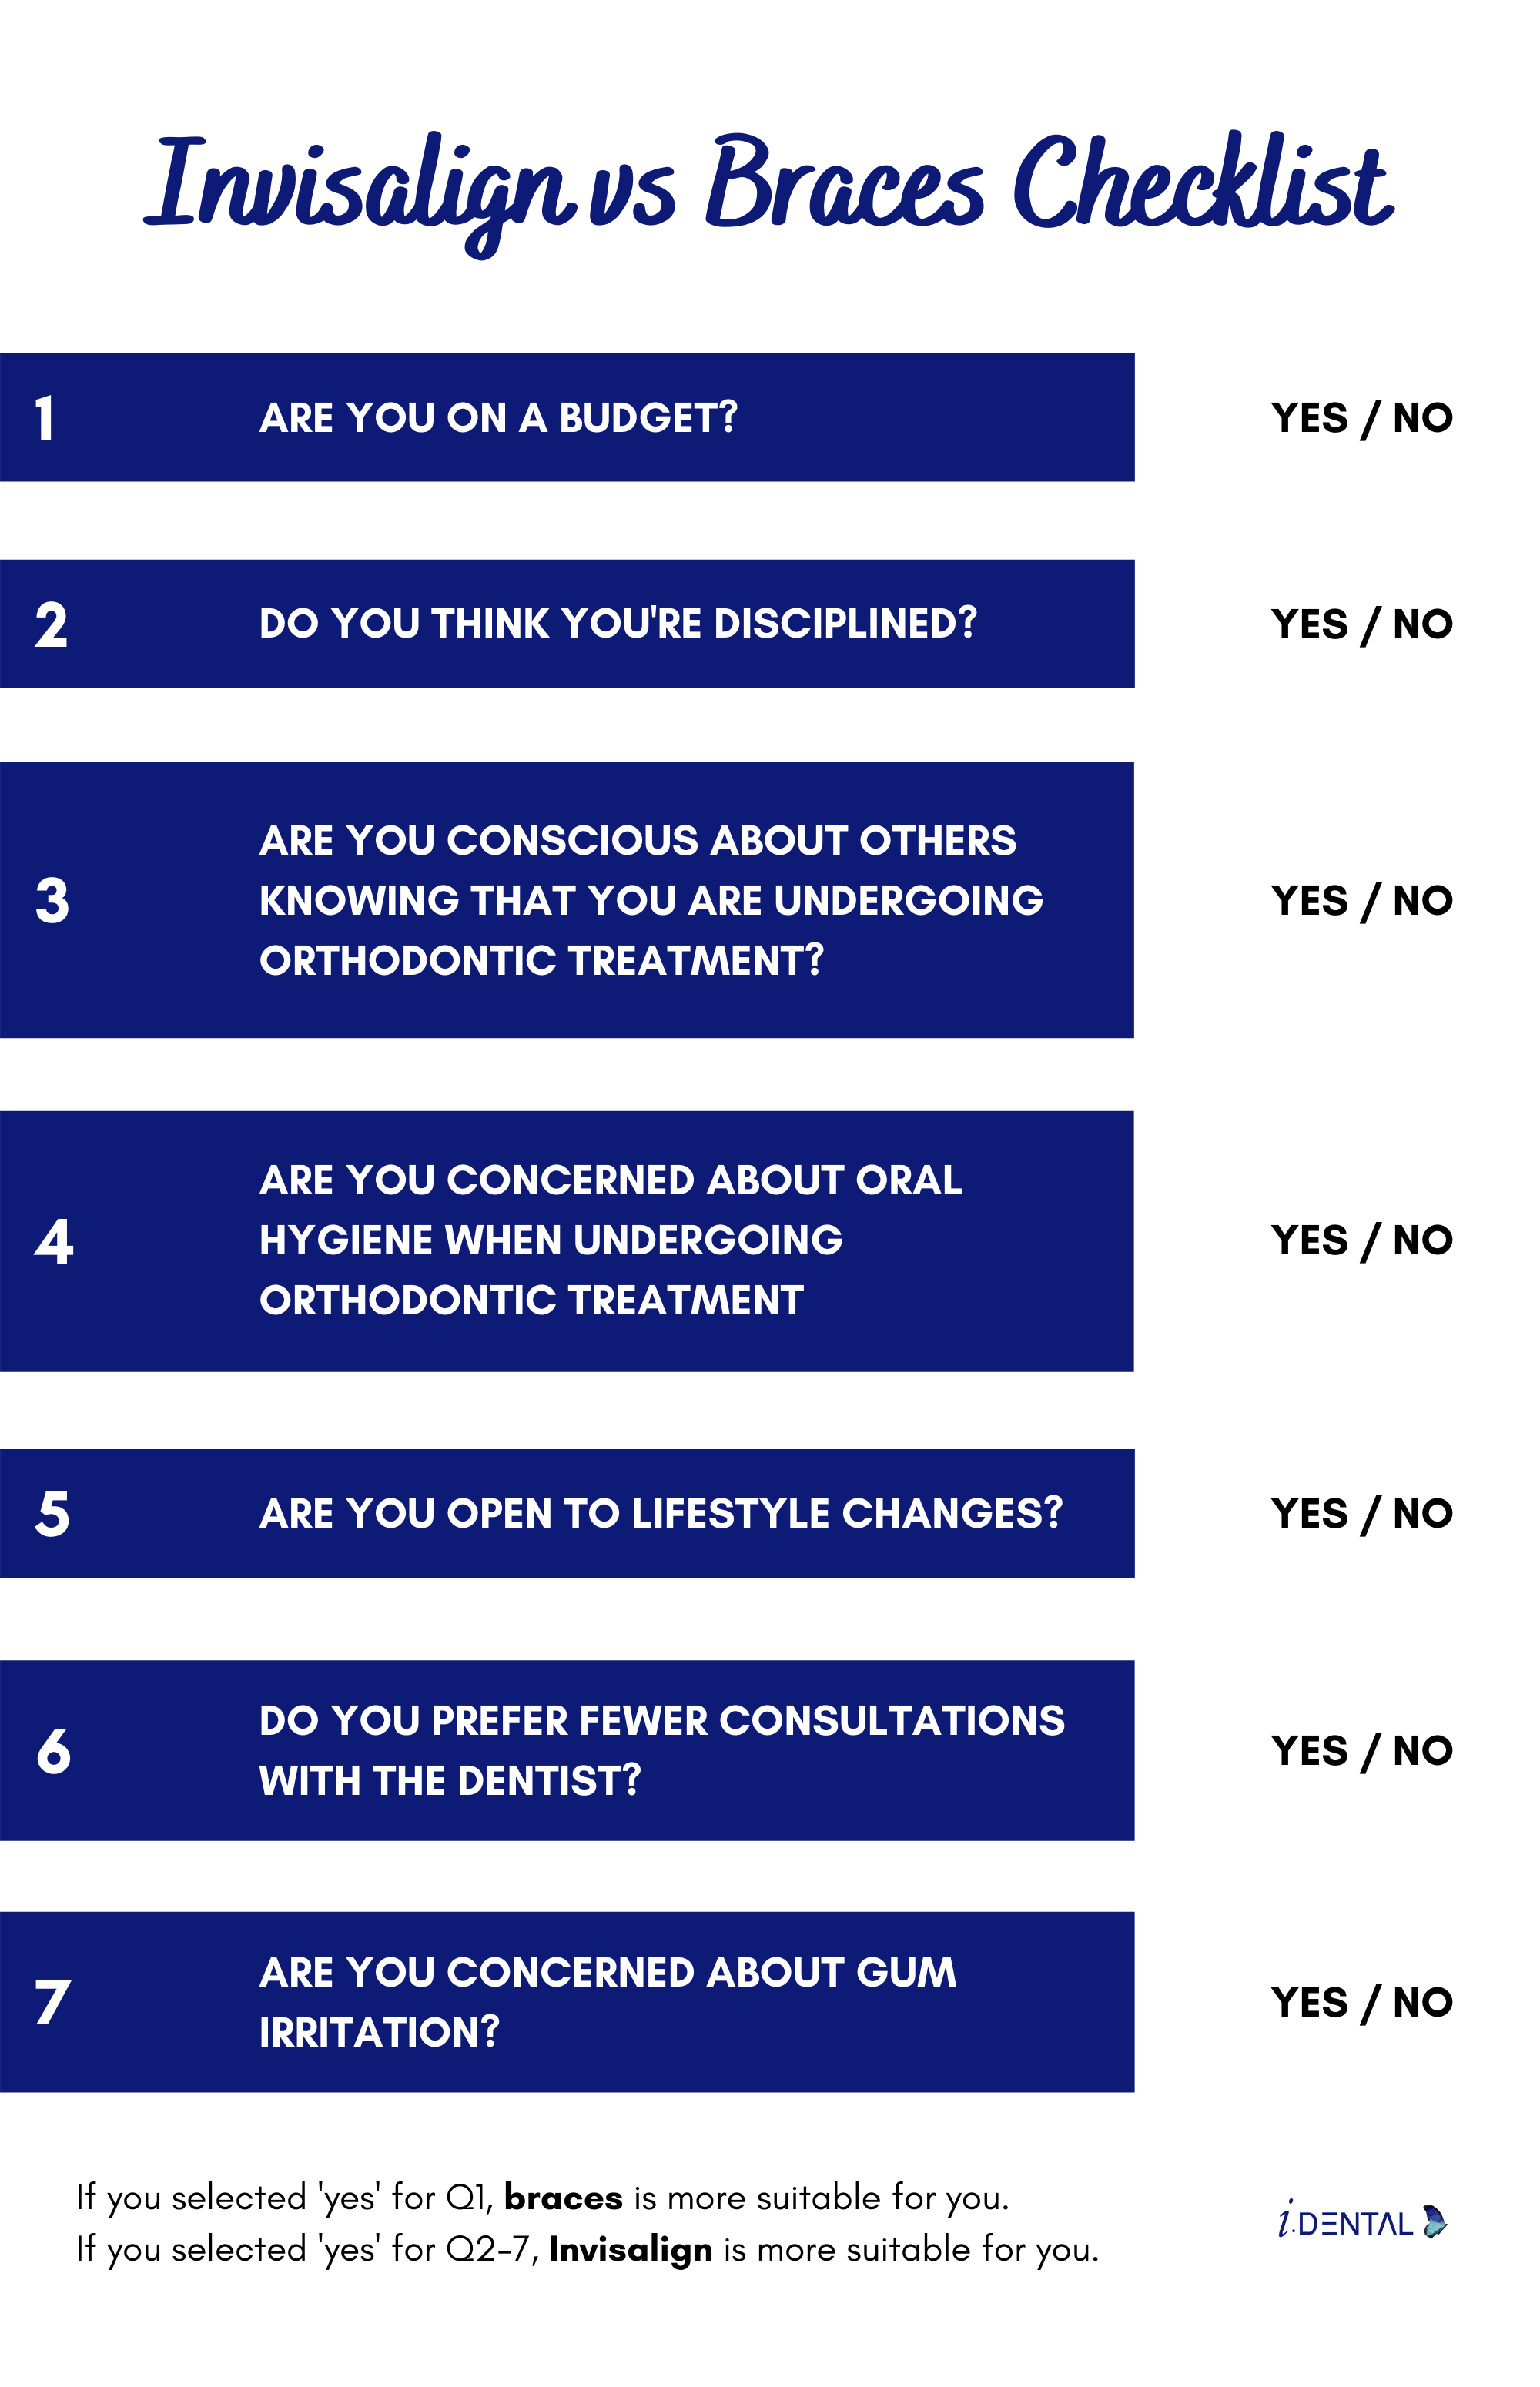 Invisalign vs braces checklist